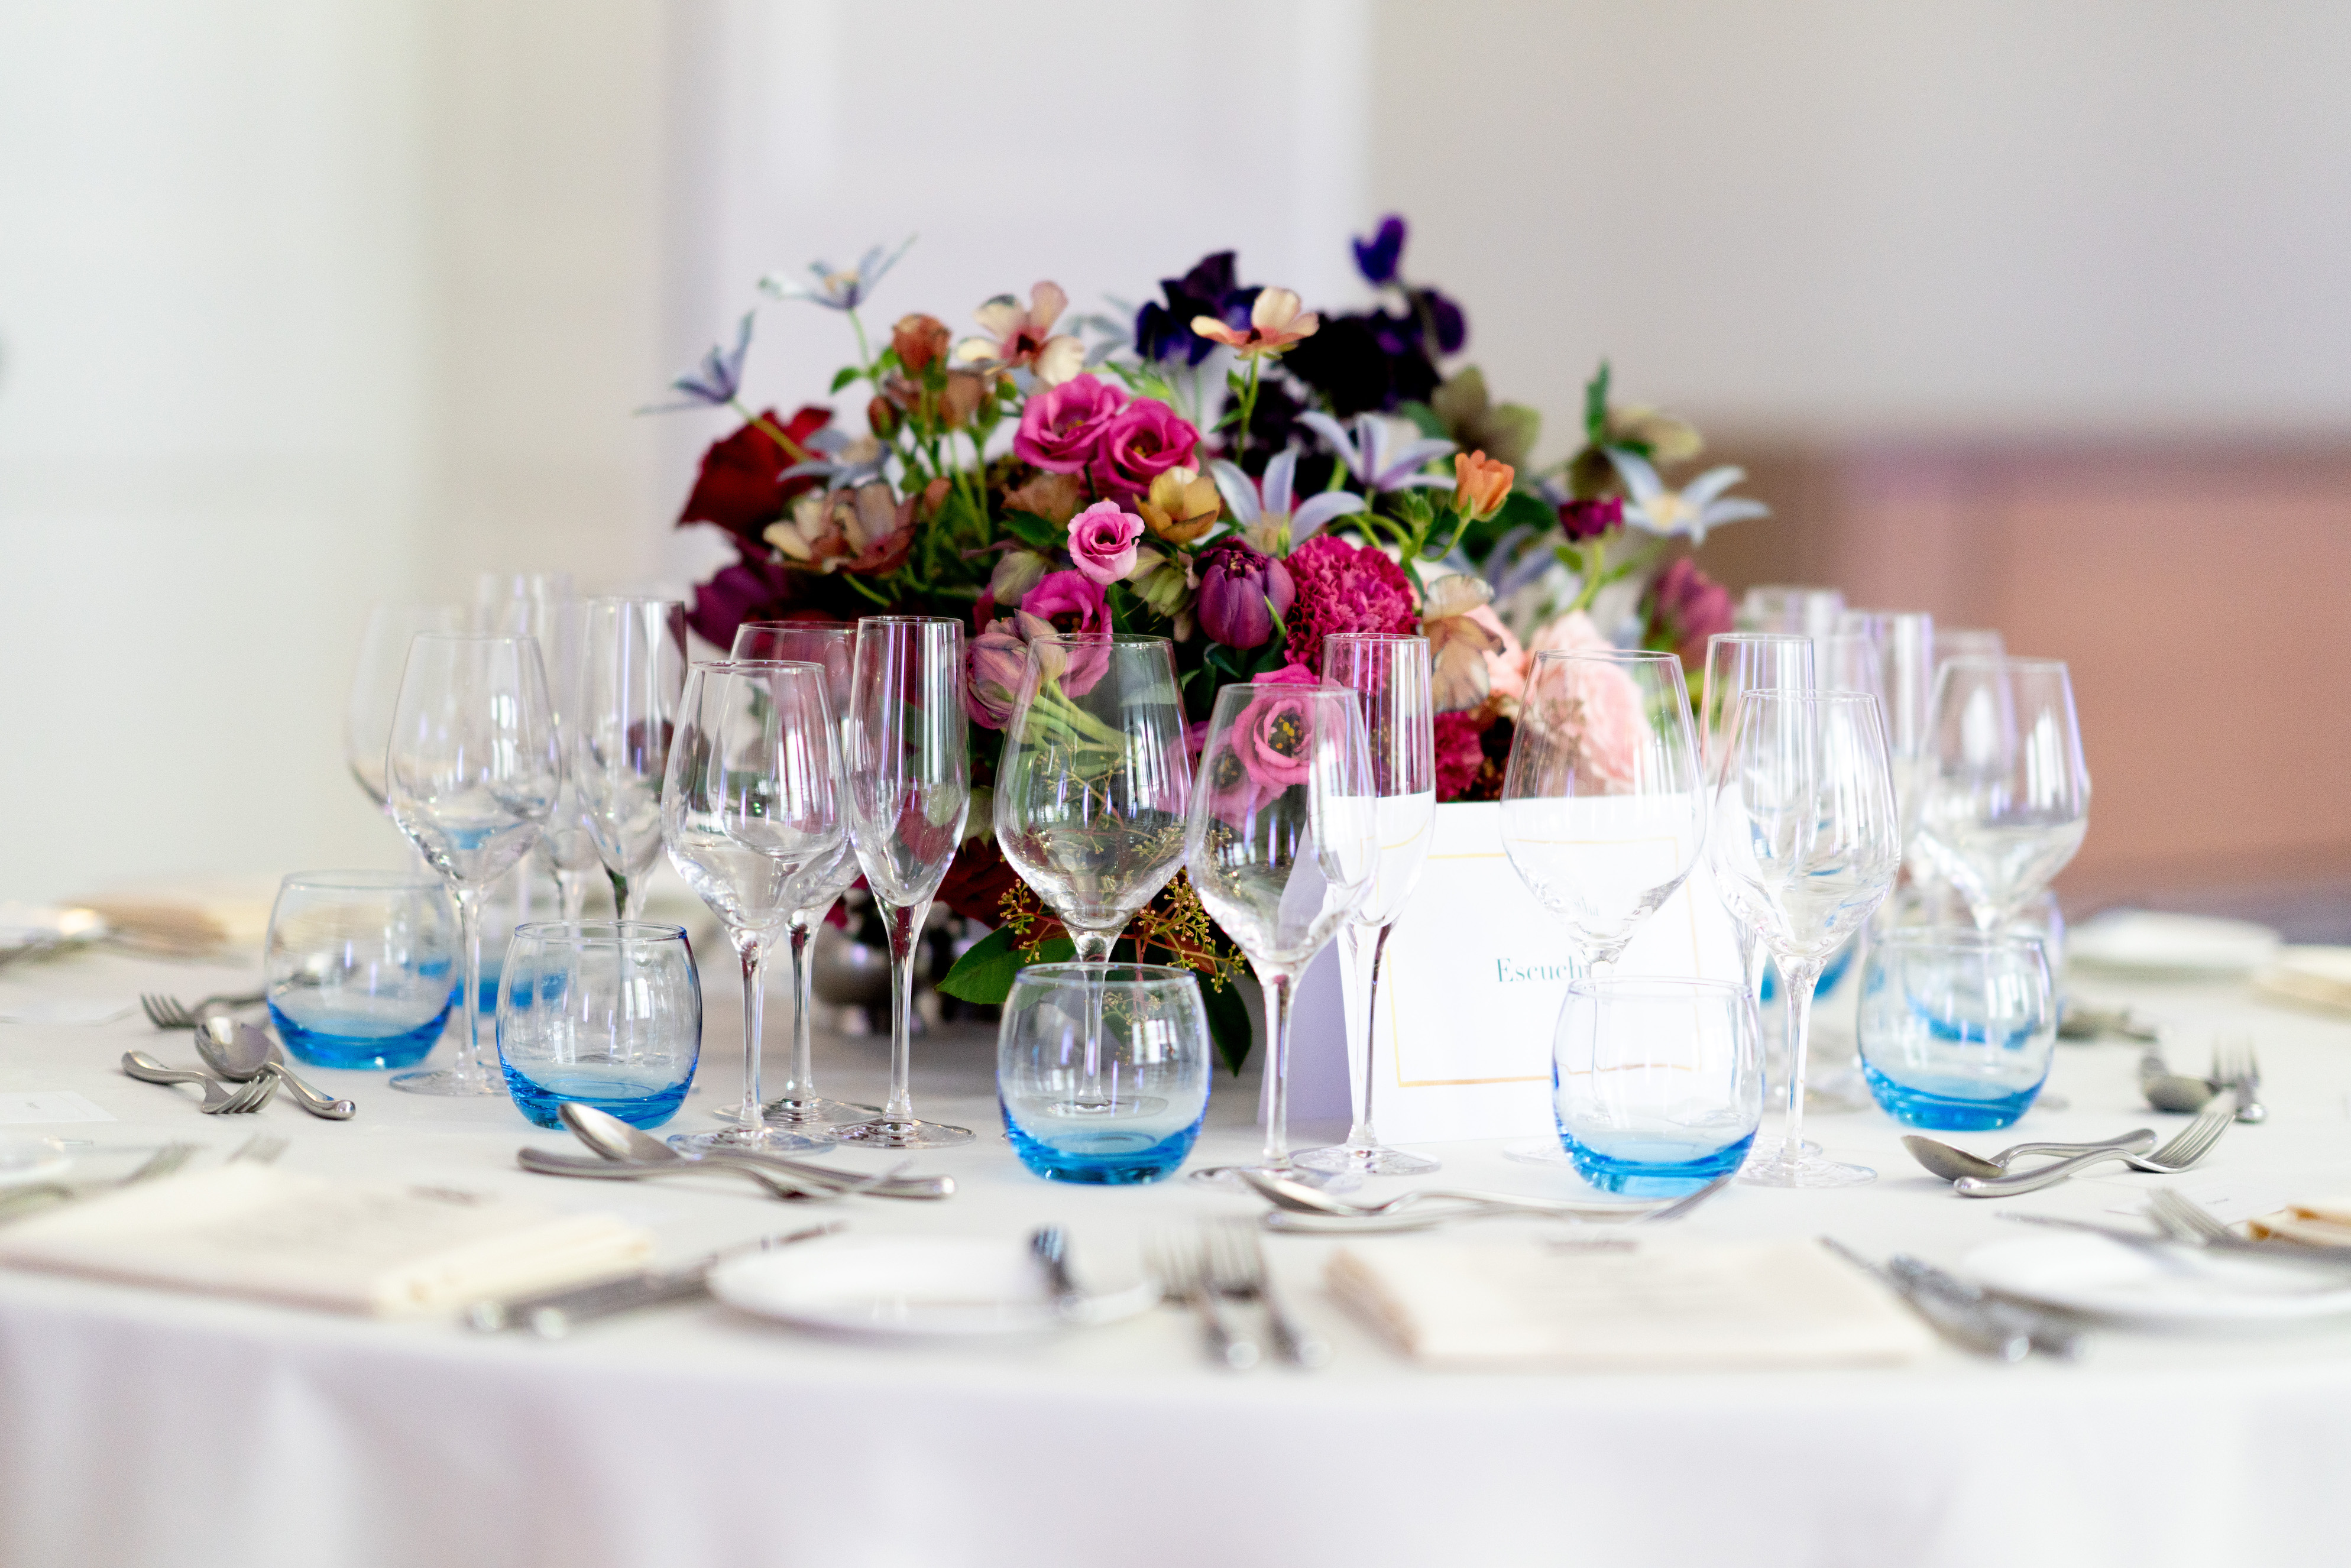 Full table set-up with a lovely flower centrepiece in the middle of the table